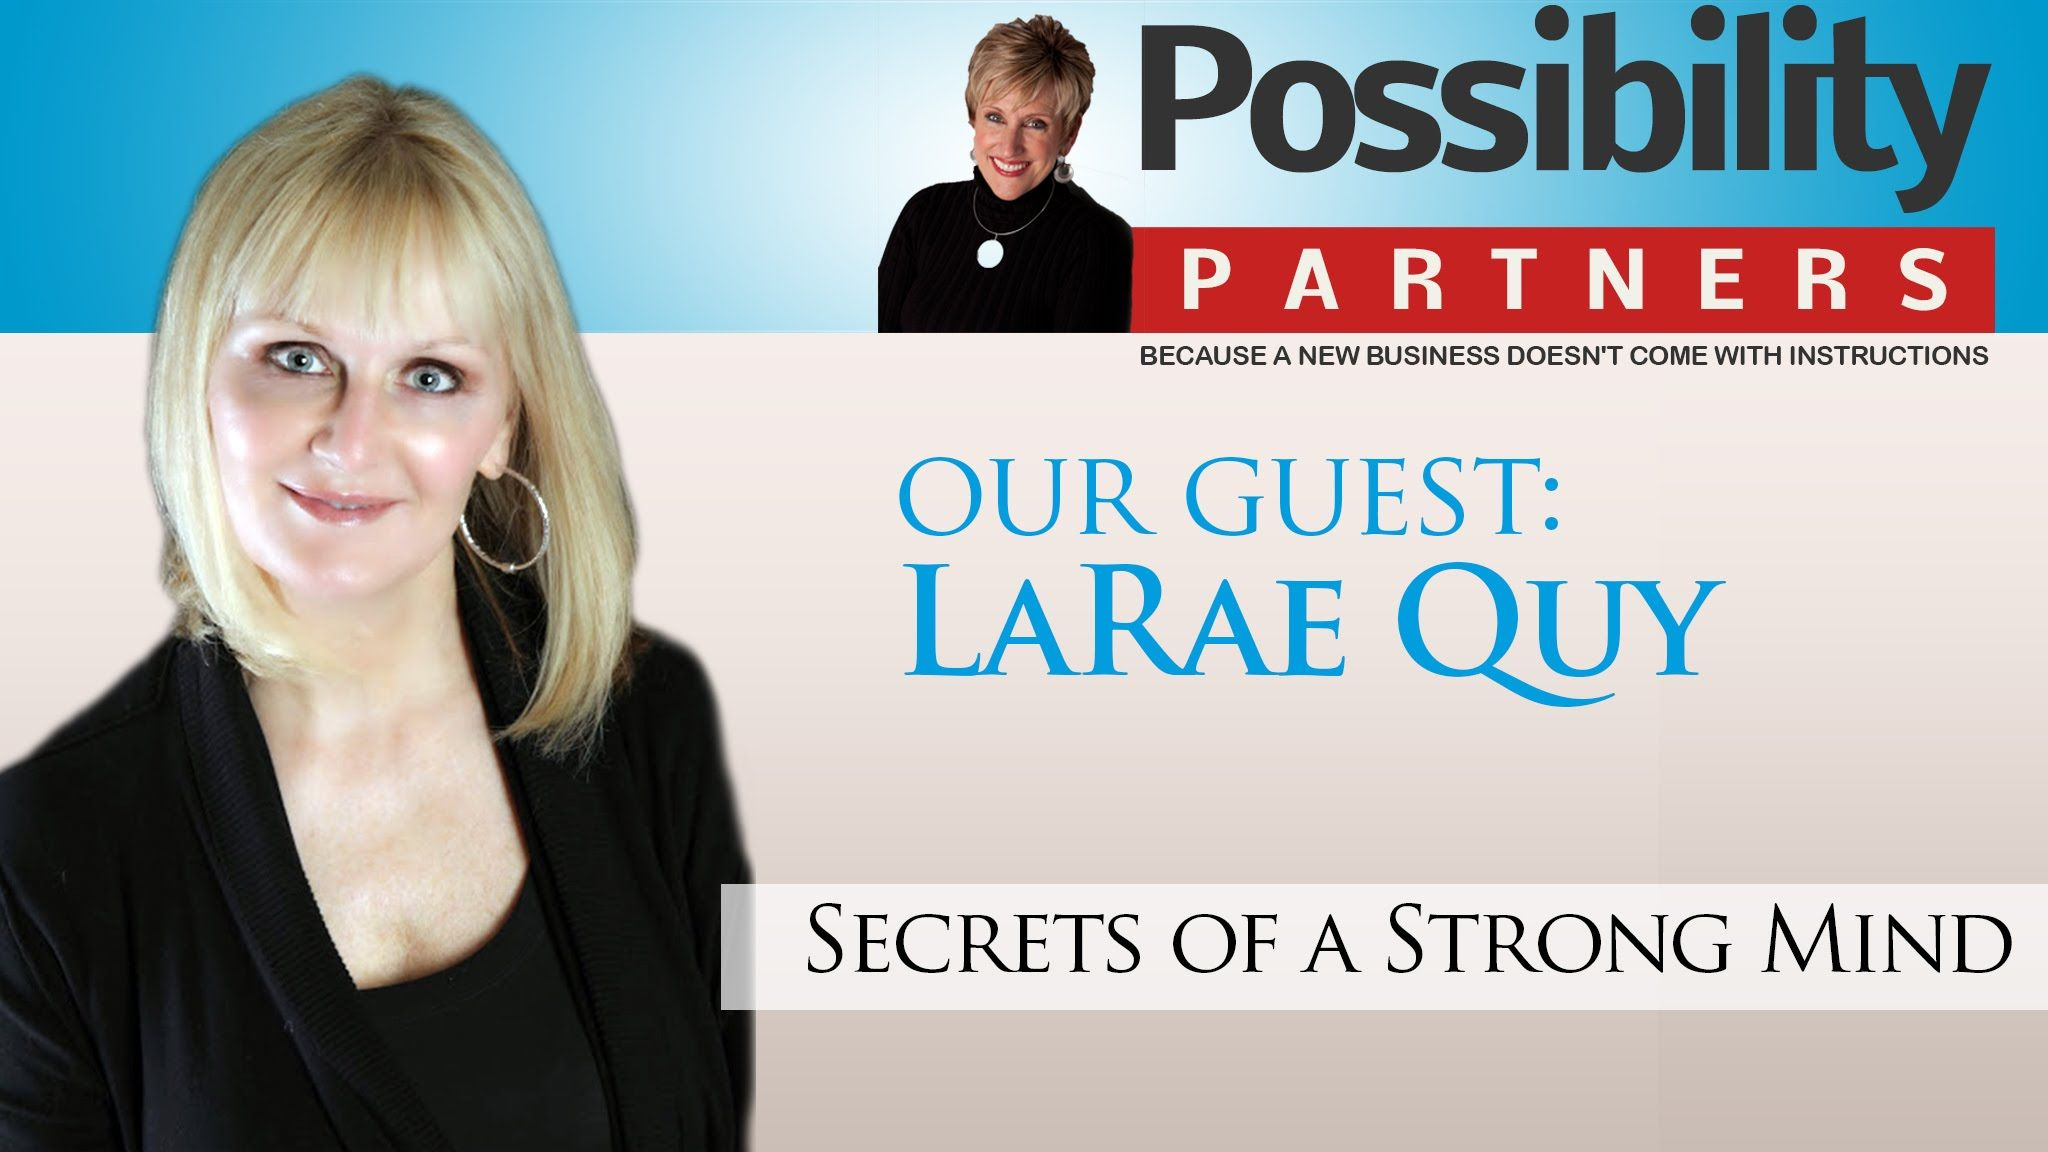 Secrets of a Strong Mind with LaRae Quy ♥ As a former